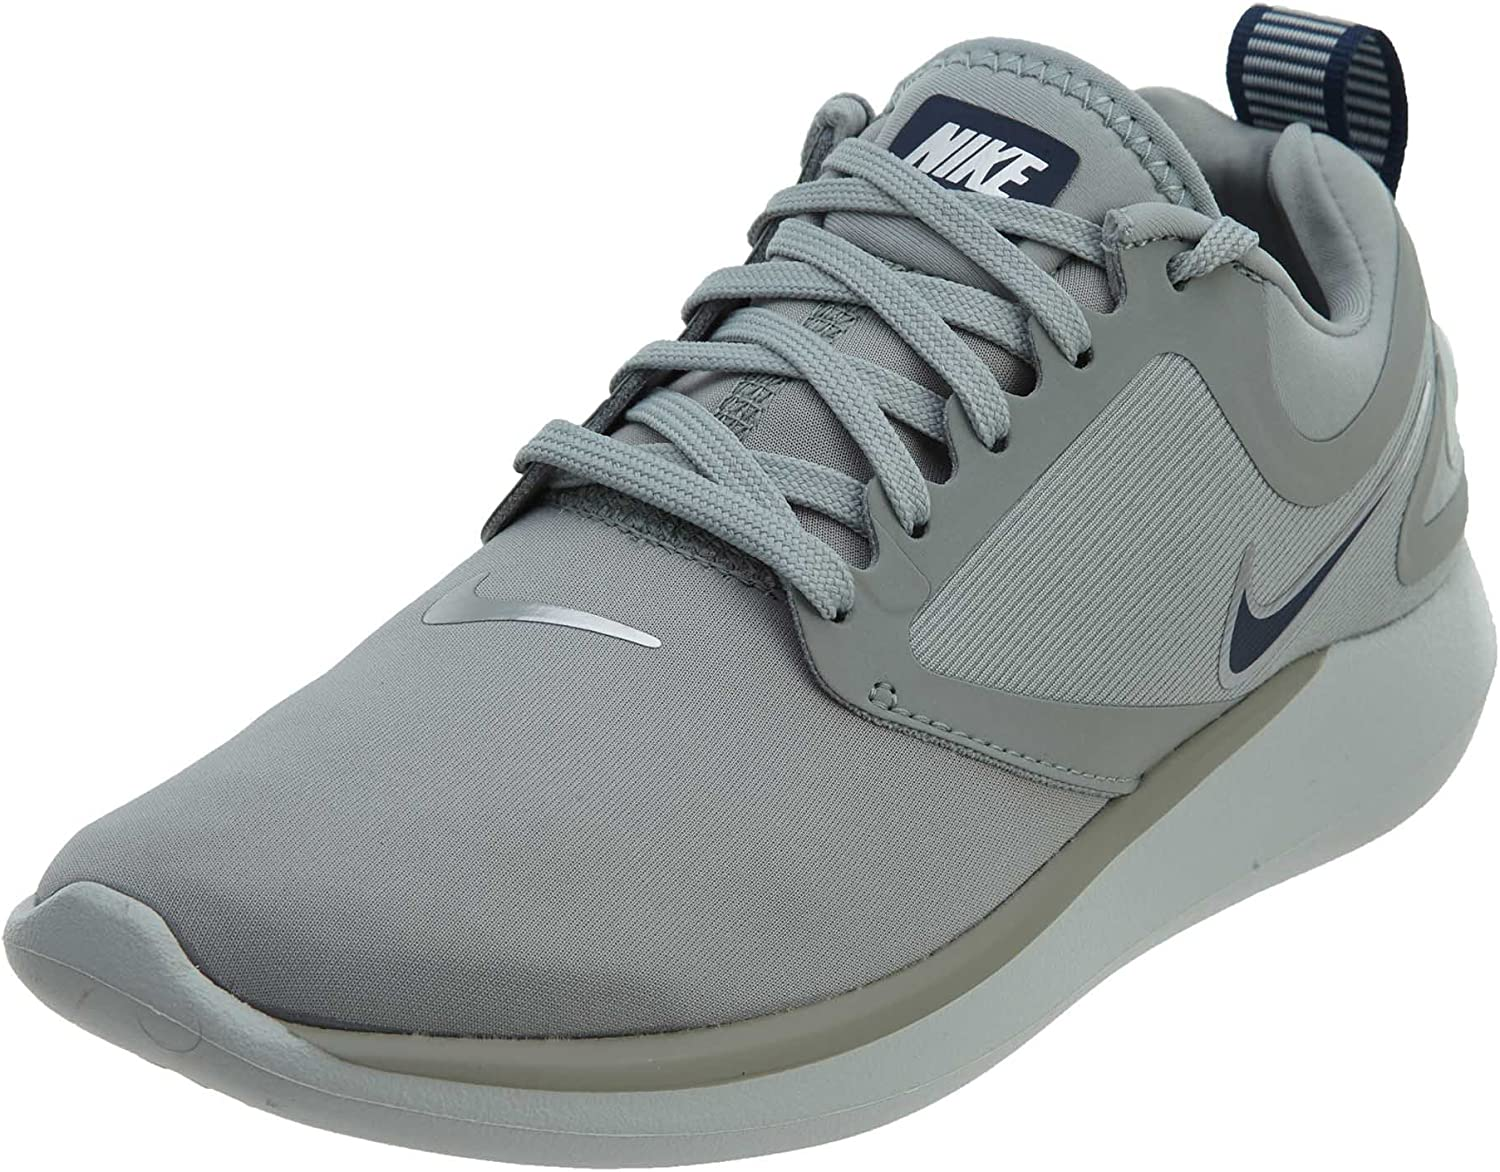 Nike Women's LunarSolo Lt Light Pumice NavyBarely Grey Running shoes